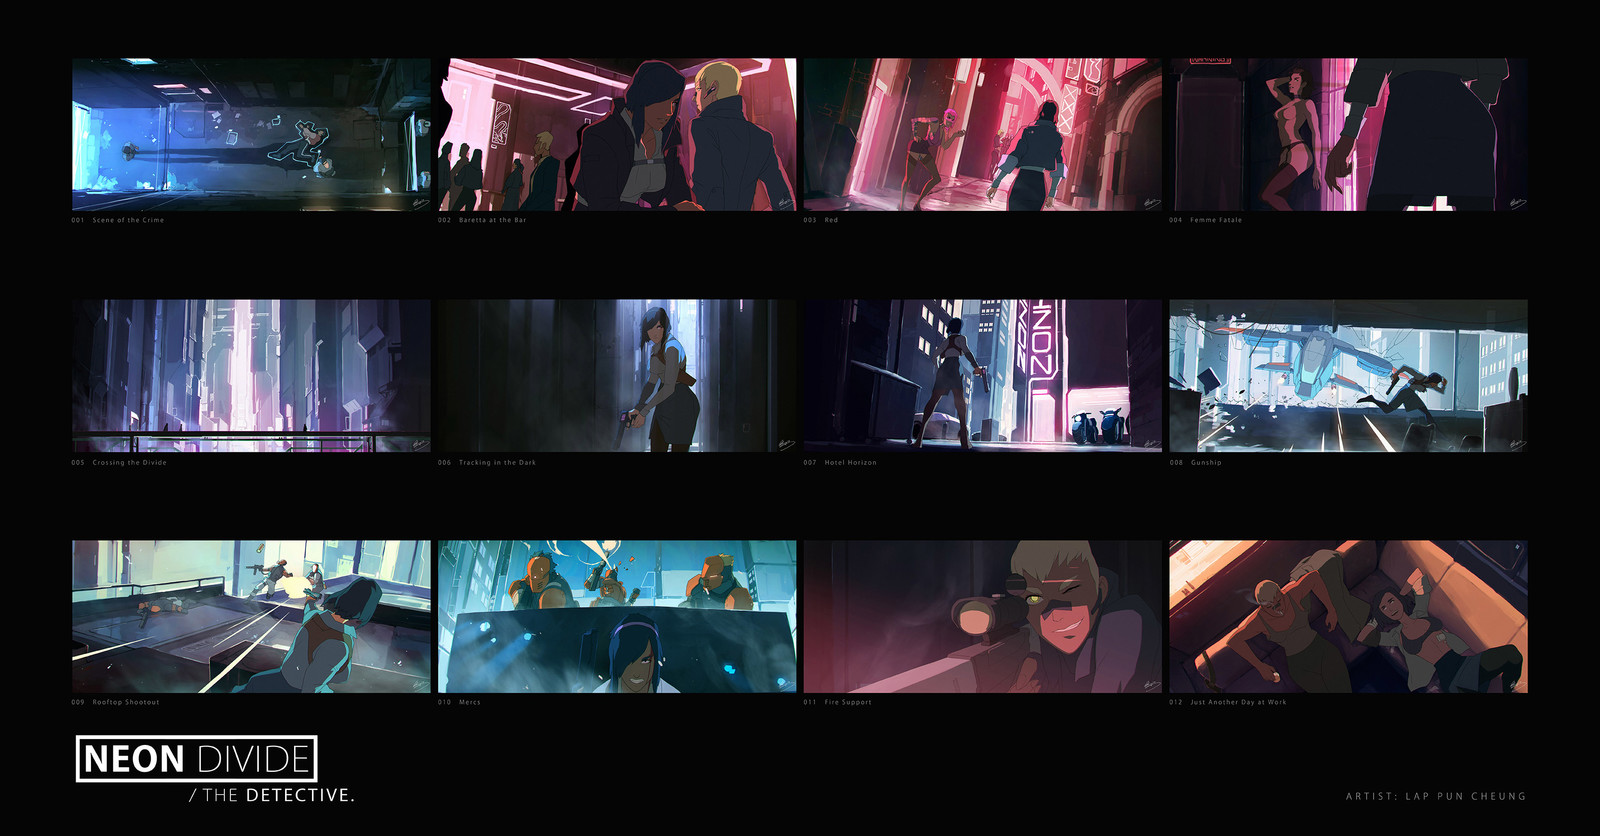 Neon Divide - Cinematic Keyframes - The Detective